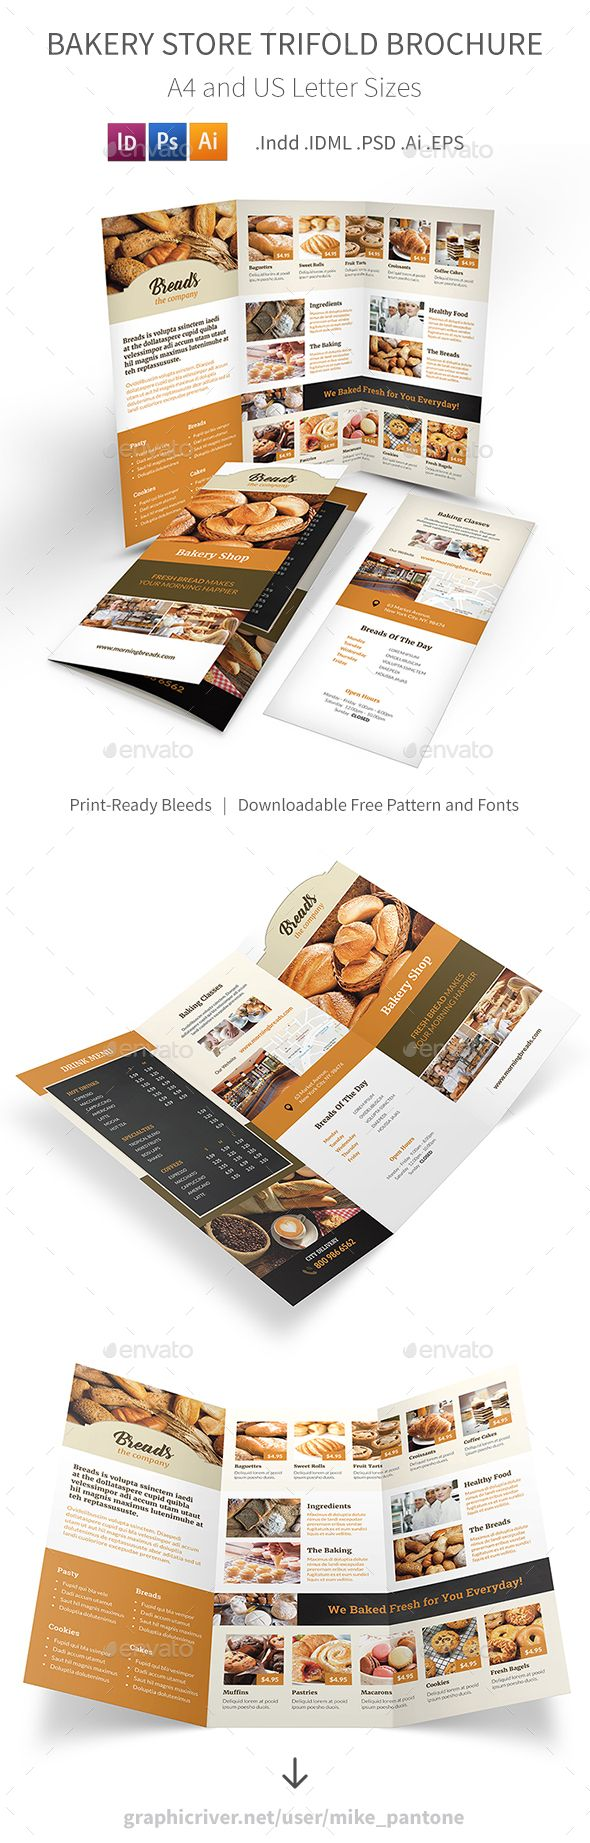 Bakery Store Trifold Brochure Bakery Store Brochures And - Bakery brochure template